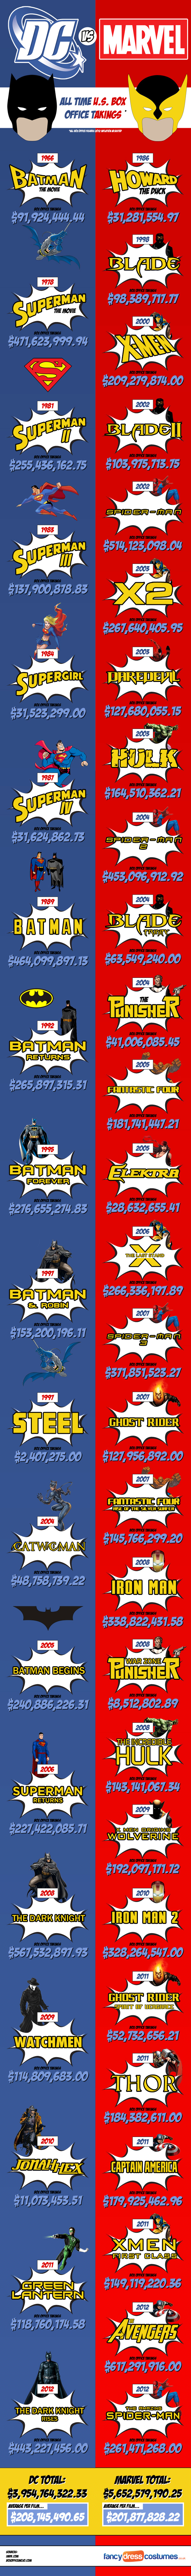 Marvel Vs. DC (infographic)